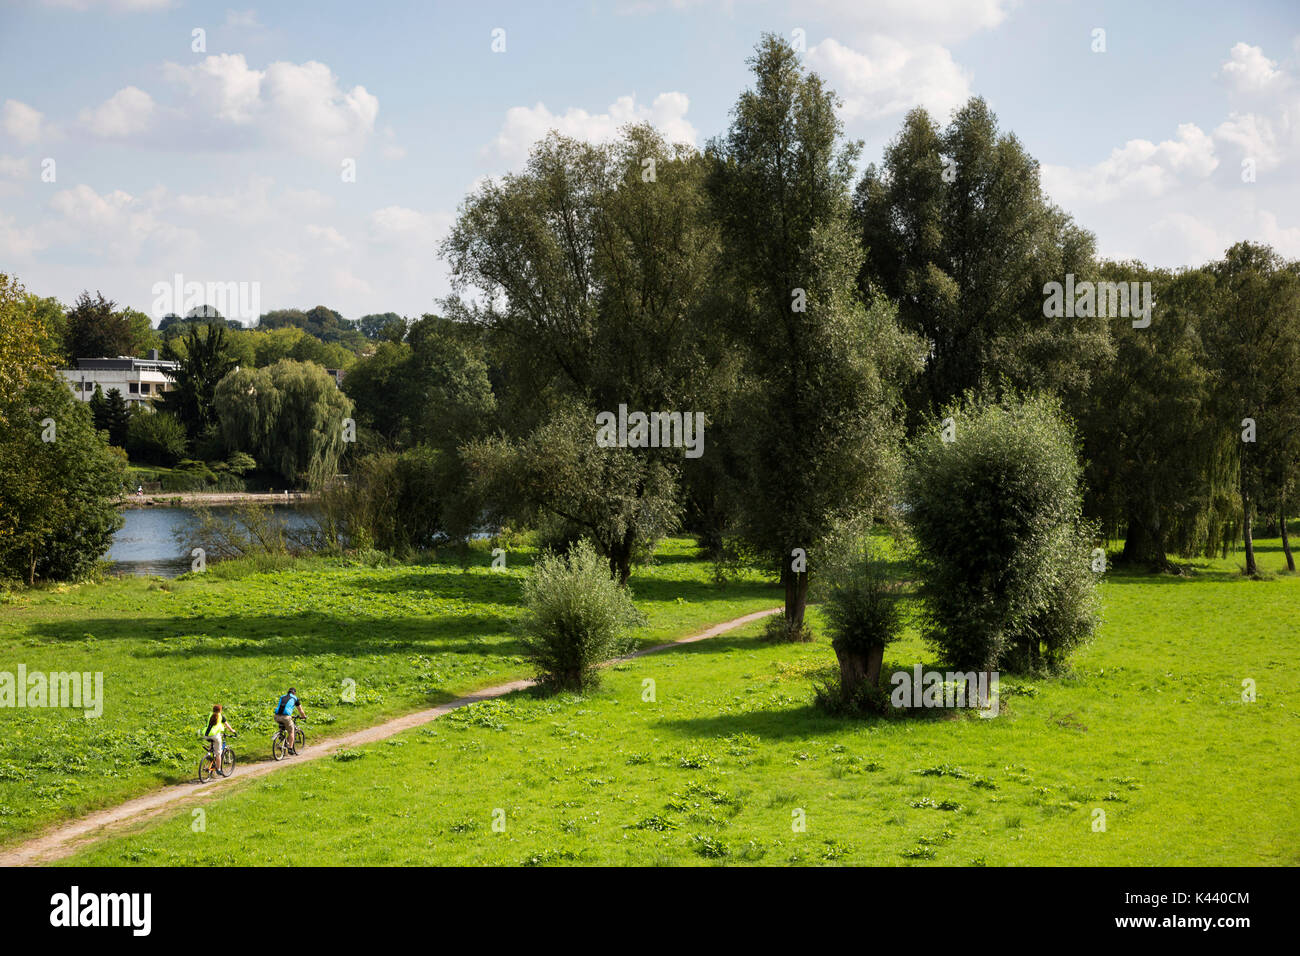 Cyclists on the floodplains of the river Ruhr in Mülheim an der Ruhr, Germany Stock Photo